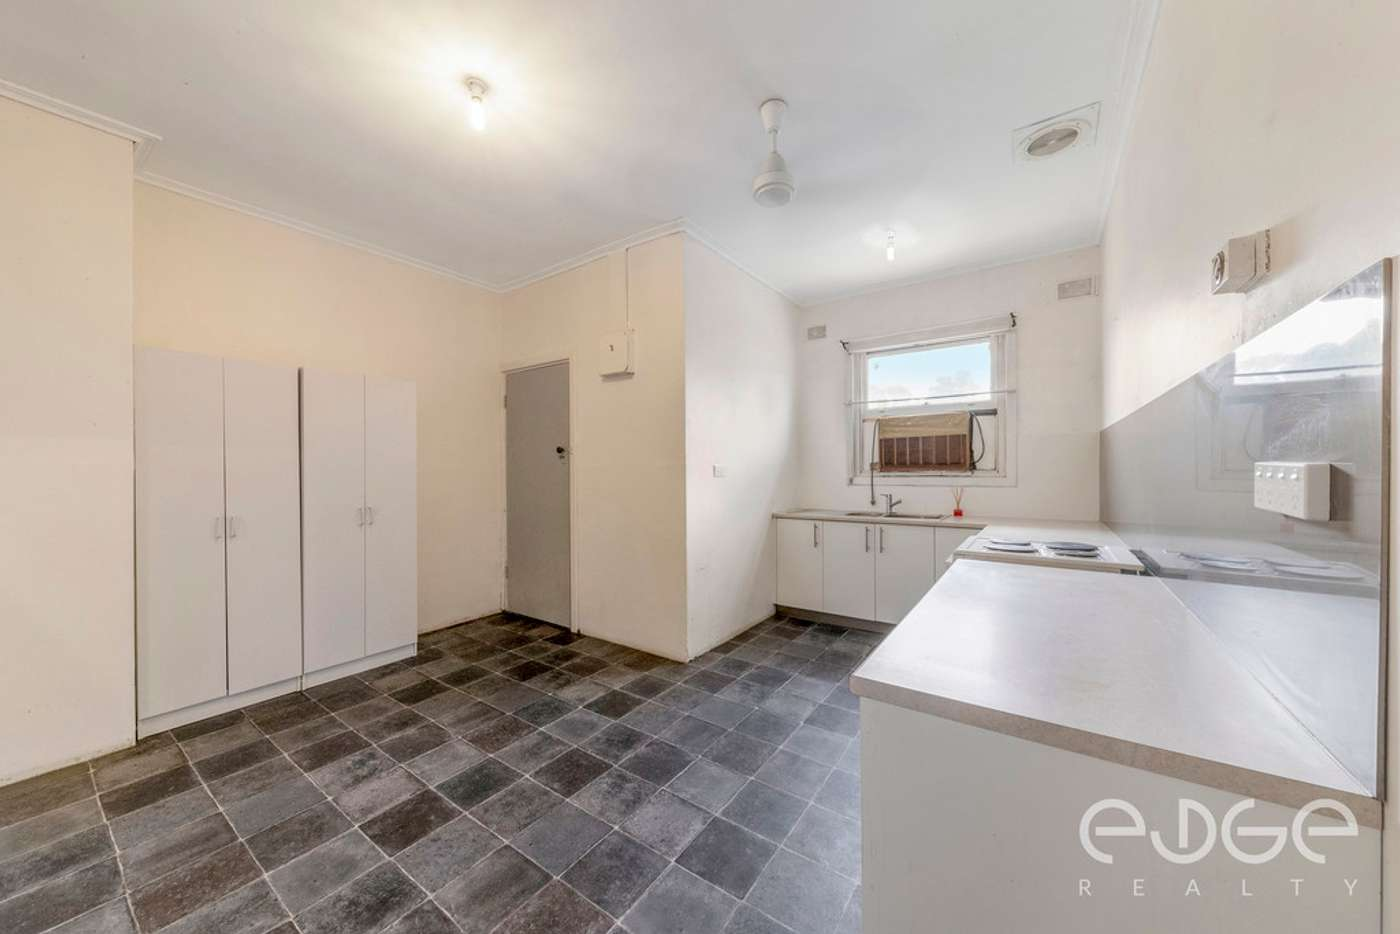 Fifth view of Homely house listing, 15 Wexcombe Street, Elizabeth Vale SA 5112